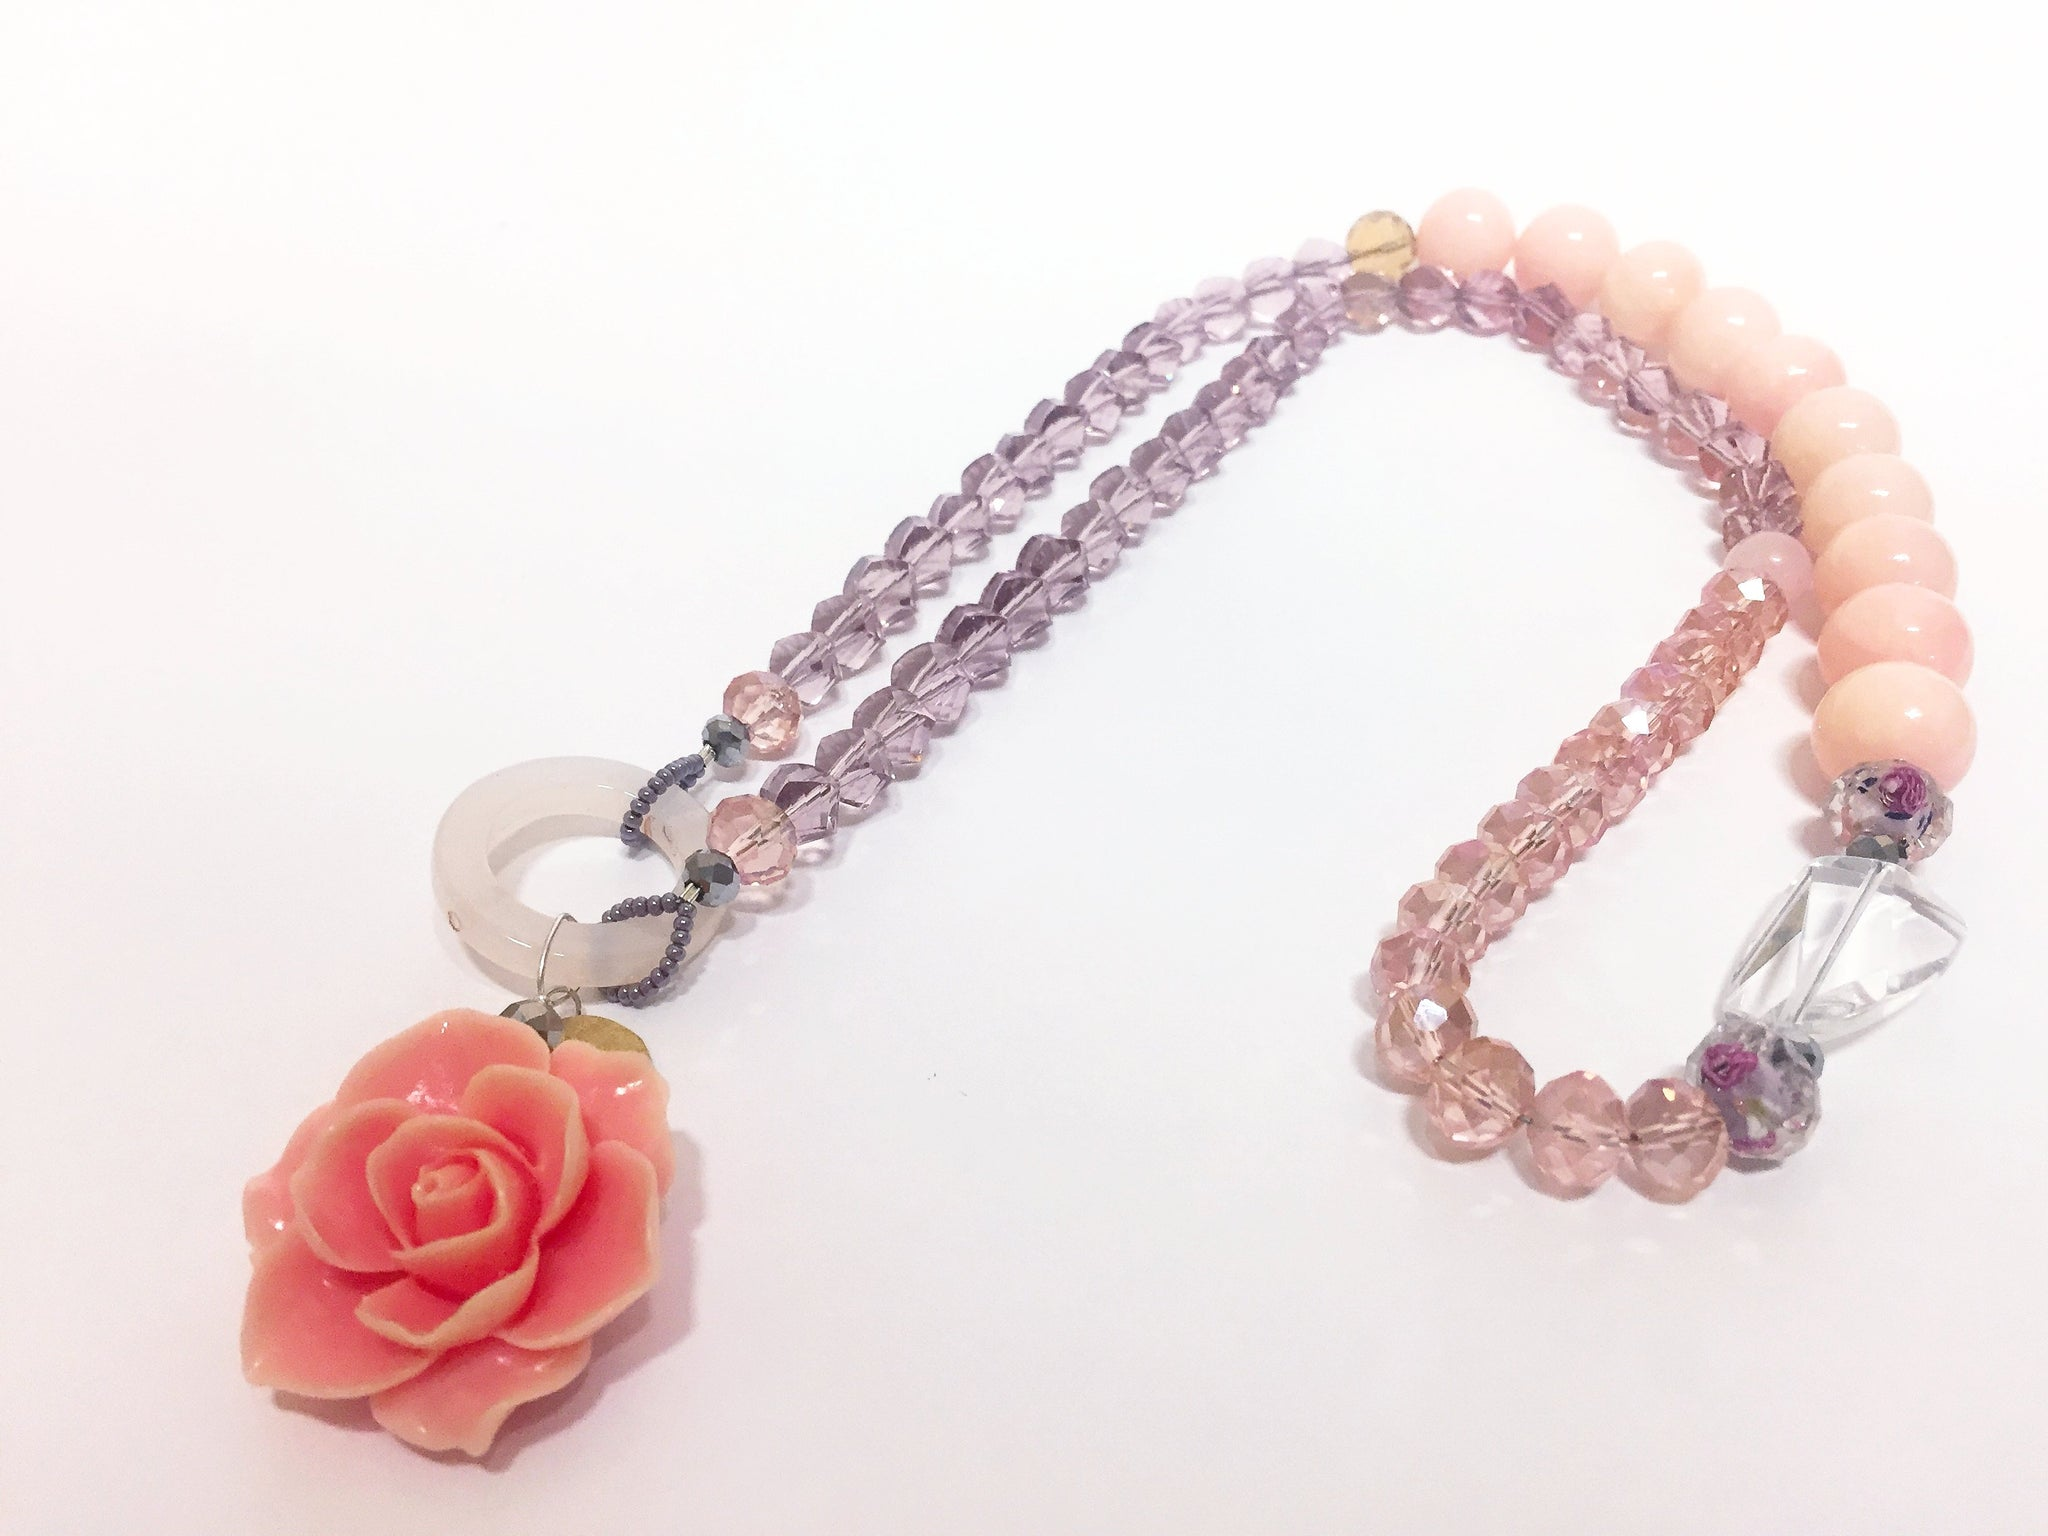 from sale floral necklace zoom crystal blush pink richard jon